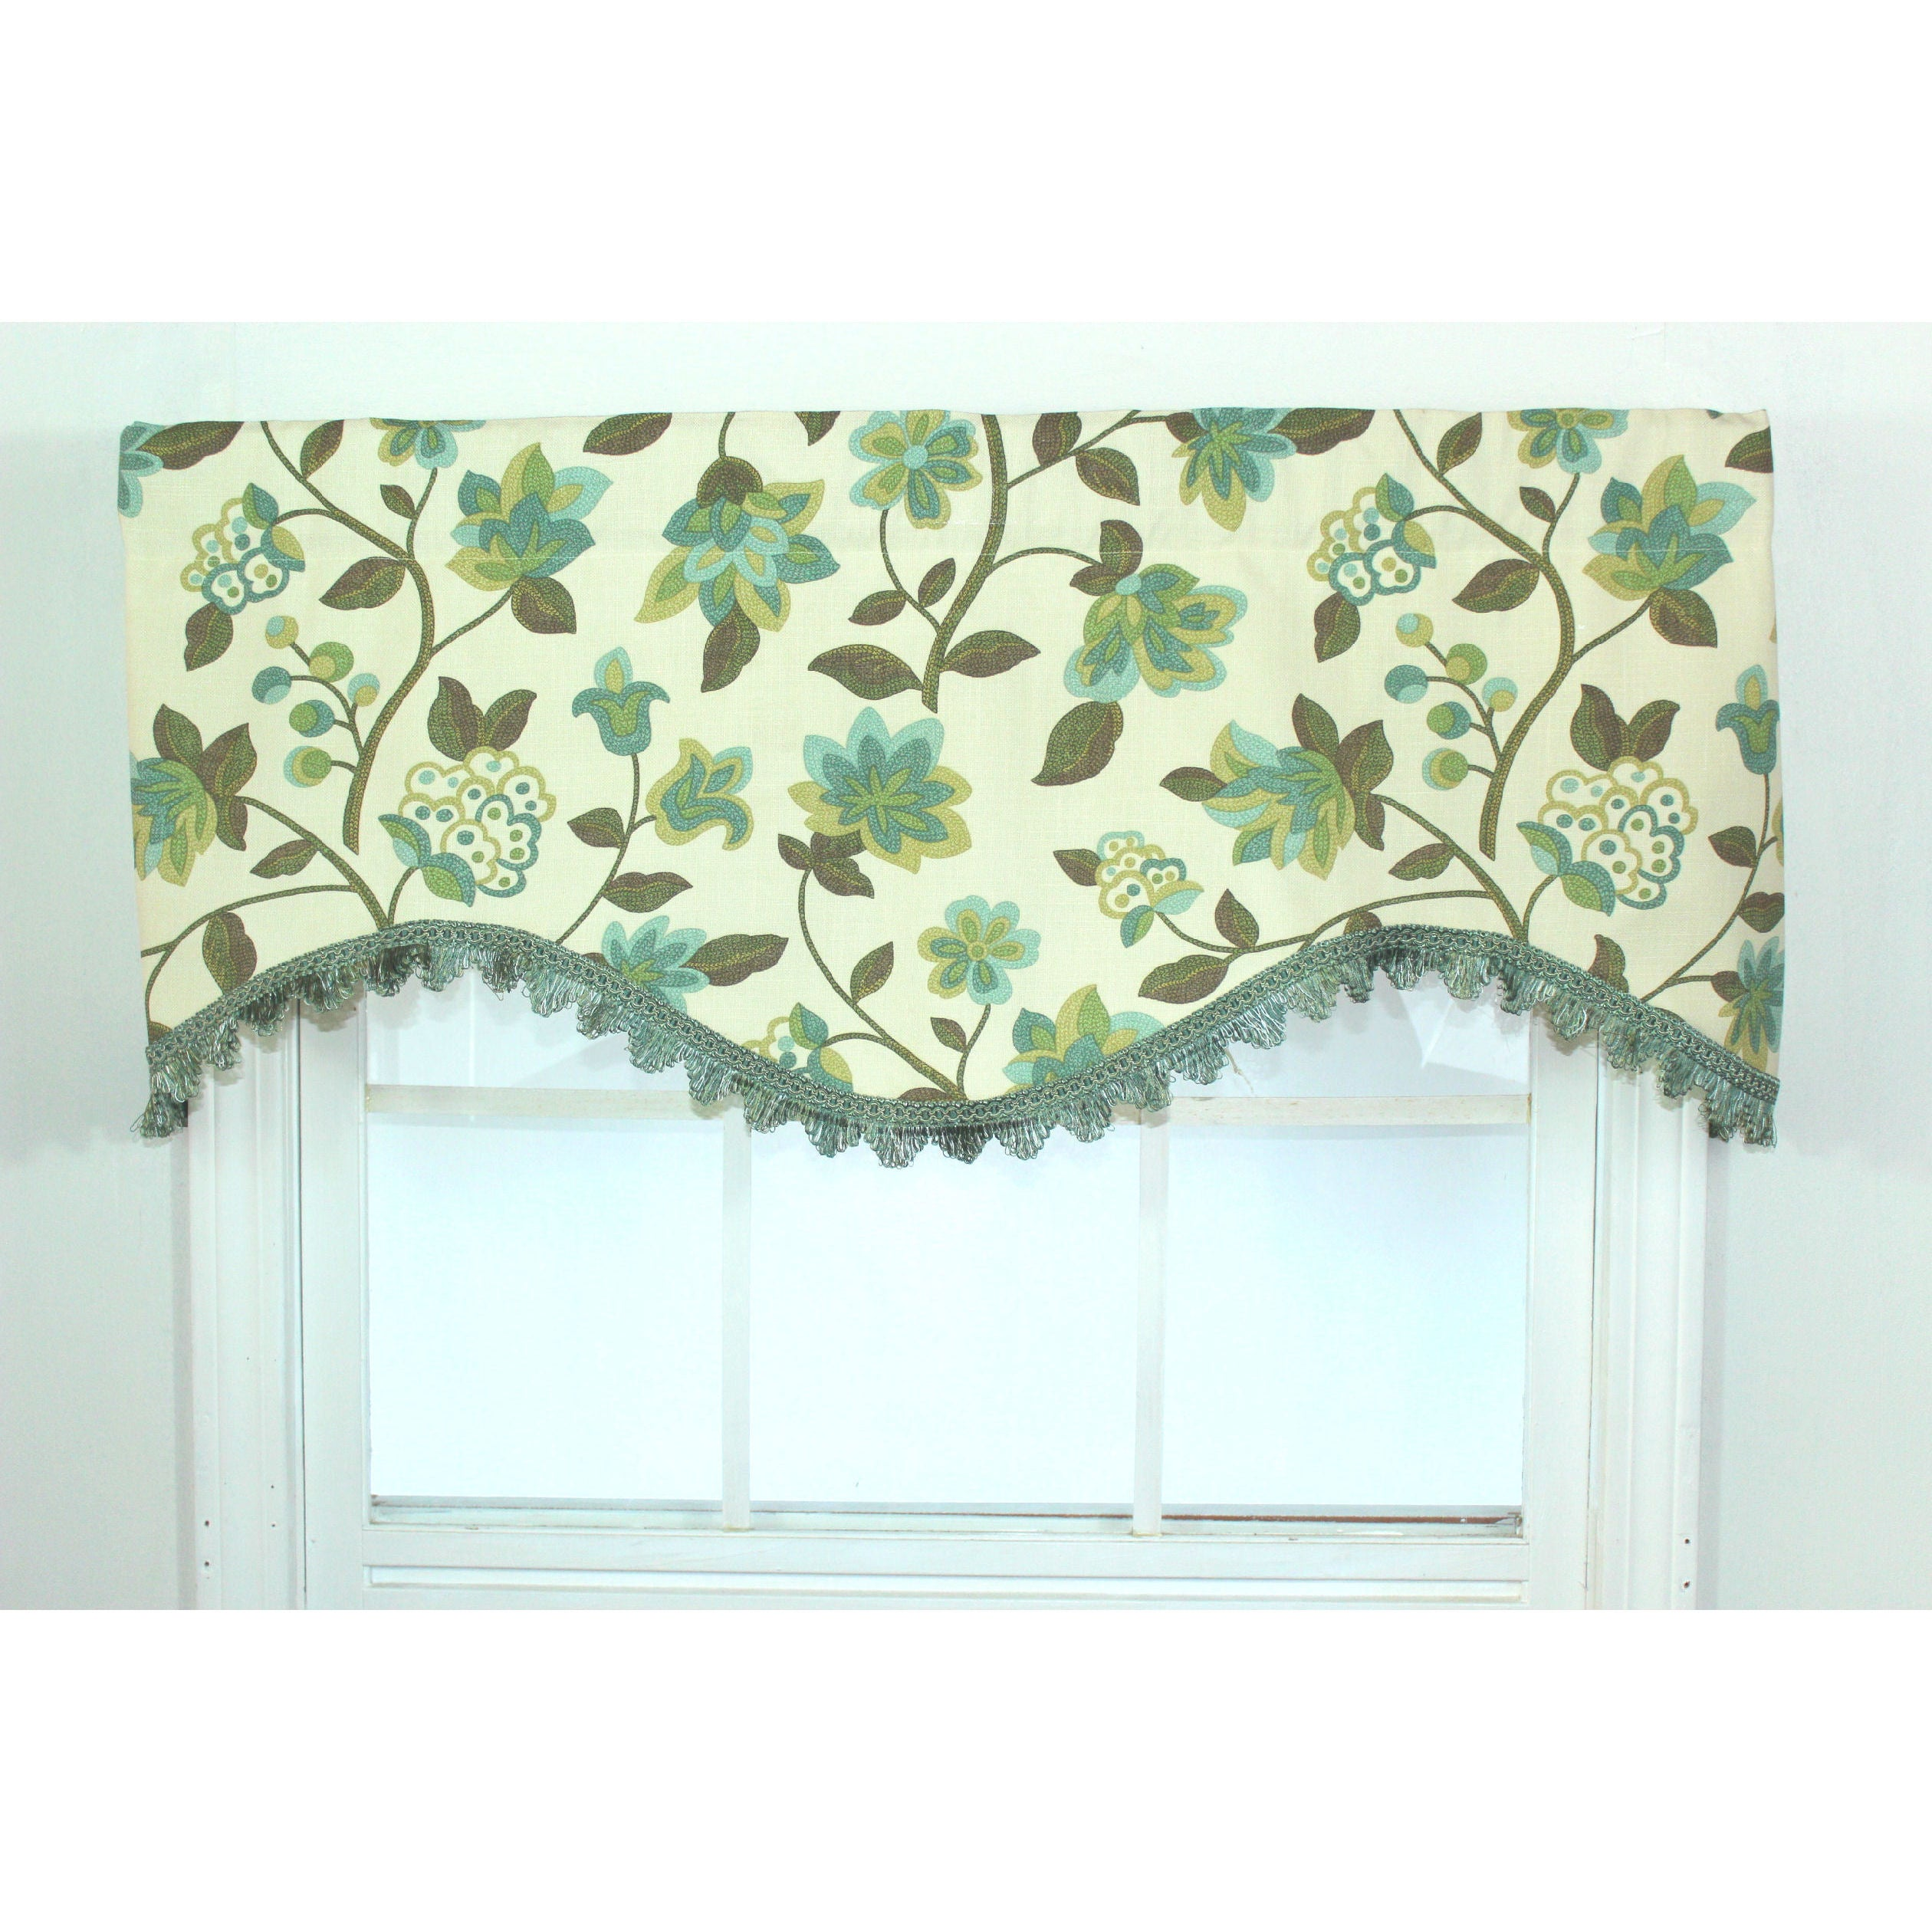 Rlf Home Harmony Spa Floral Cornice Window Valance at Sears.com